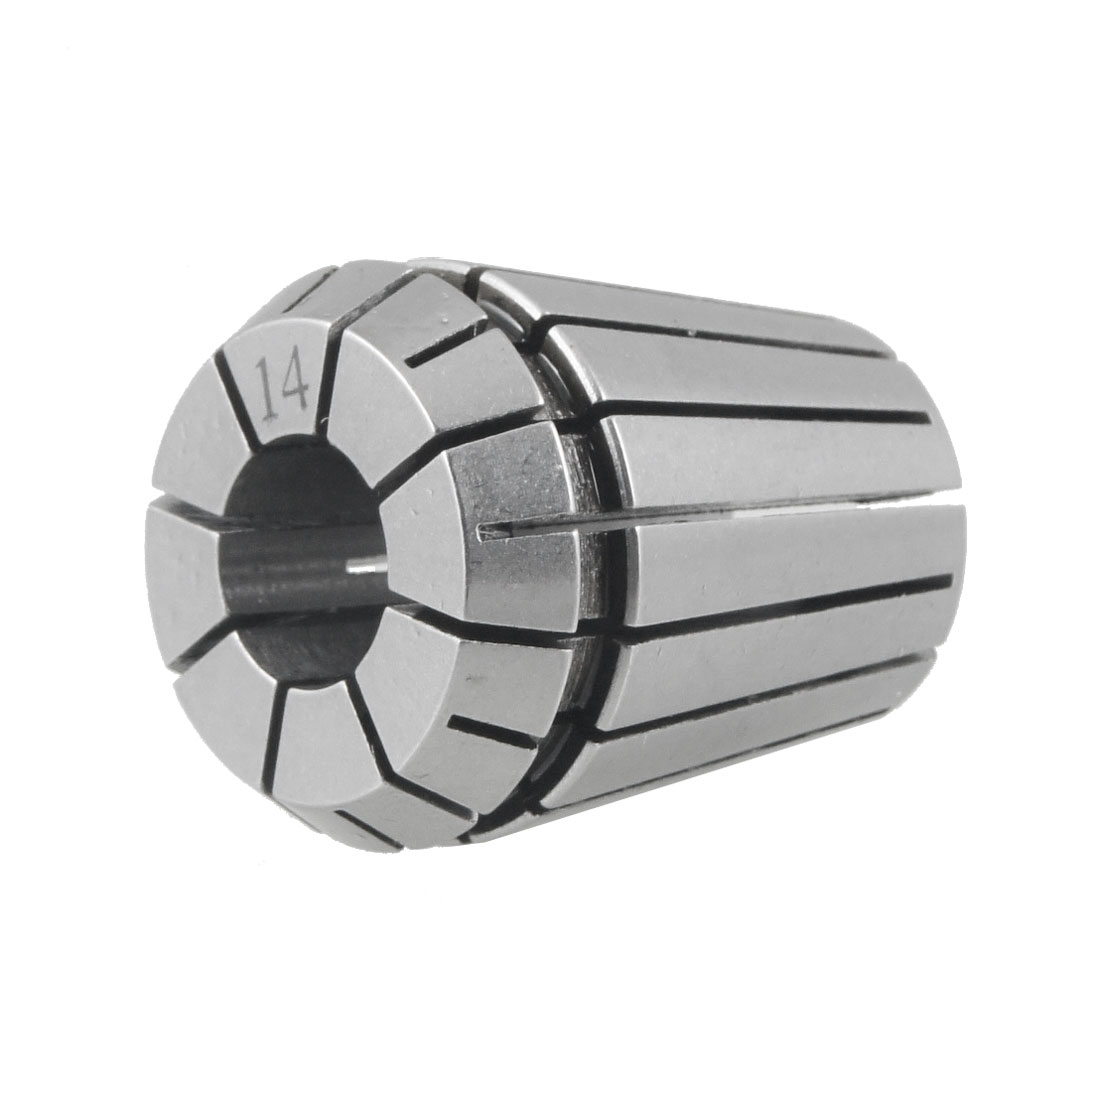 Round Chuck Mill Stainless Steel Spring Collet ER32 ER-32 14mm